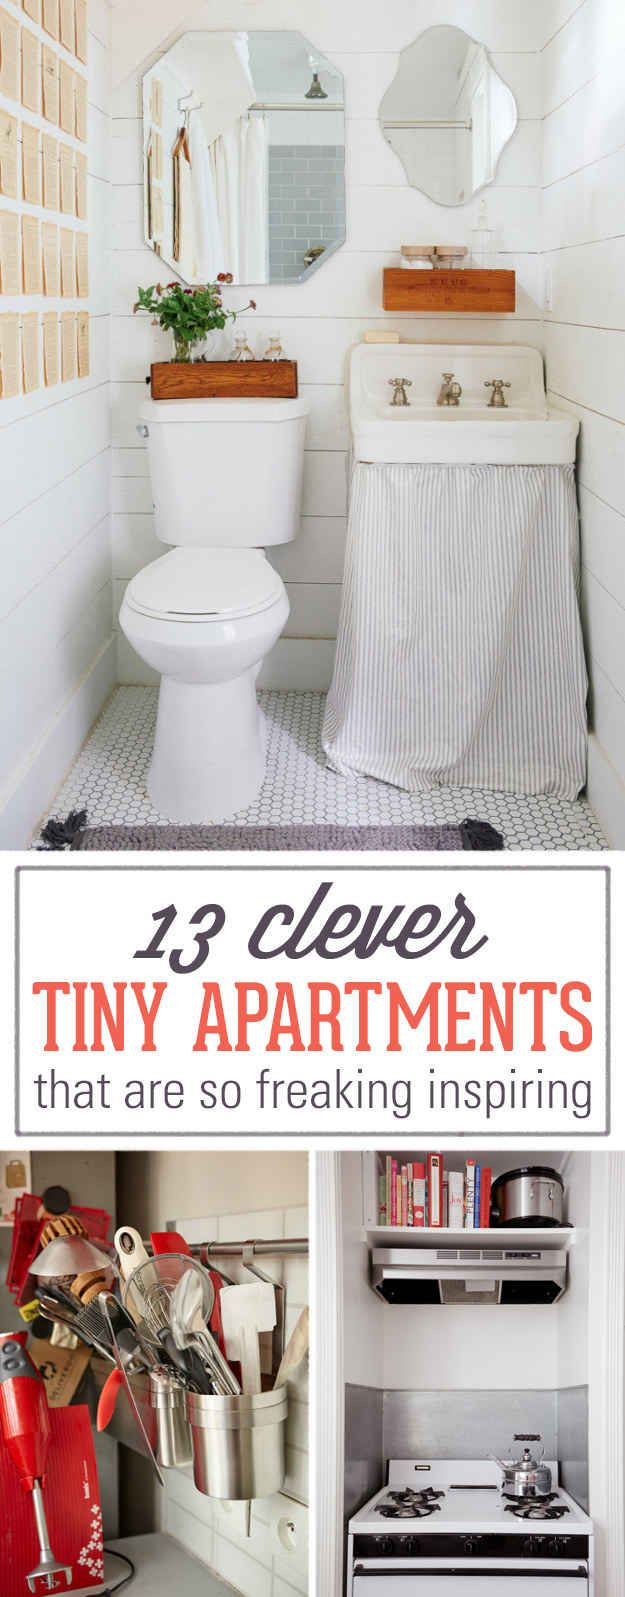 Bathroom ideas for small apartment bathrooms - 13 Clever Tiny Apartments That Are So Freaking Inspiring